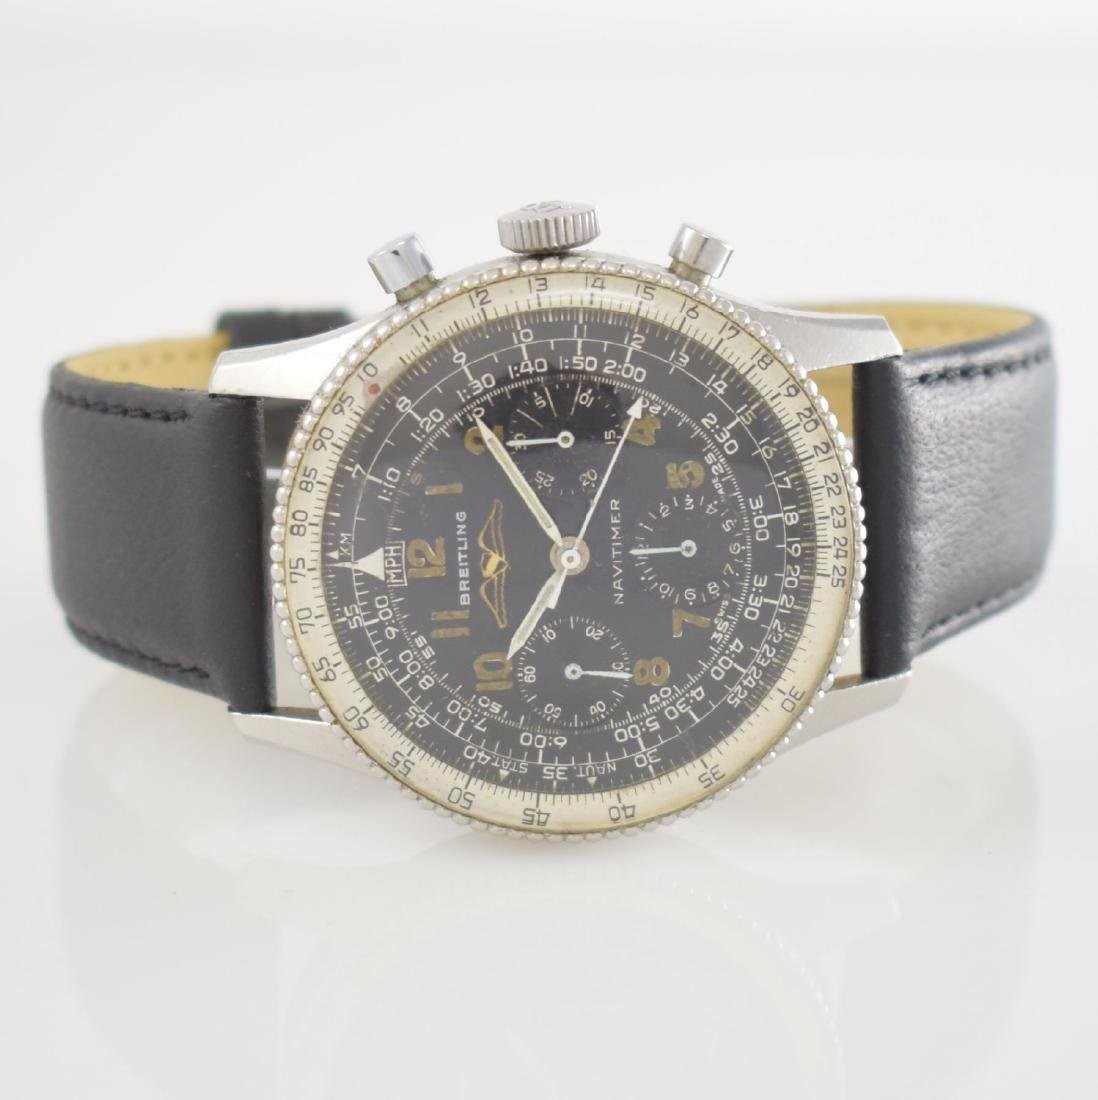 BREITLING Navitimer reference 806 gents wristwatch